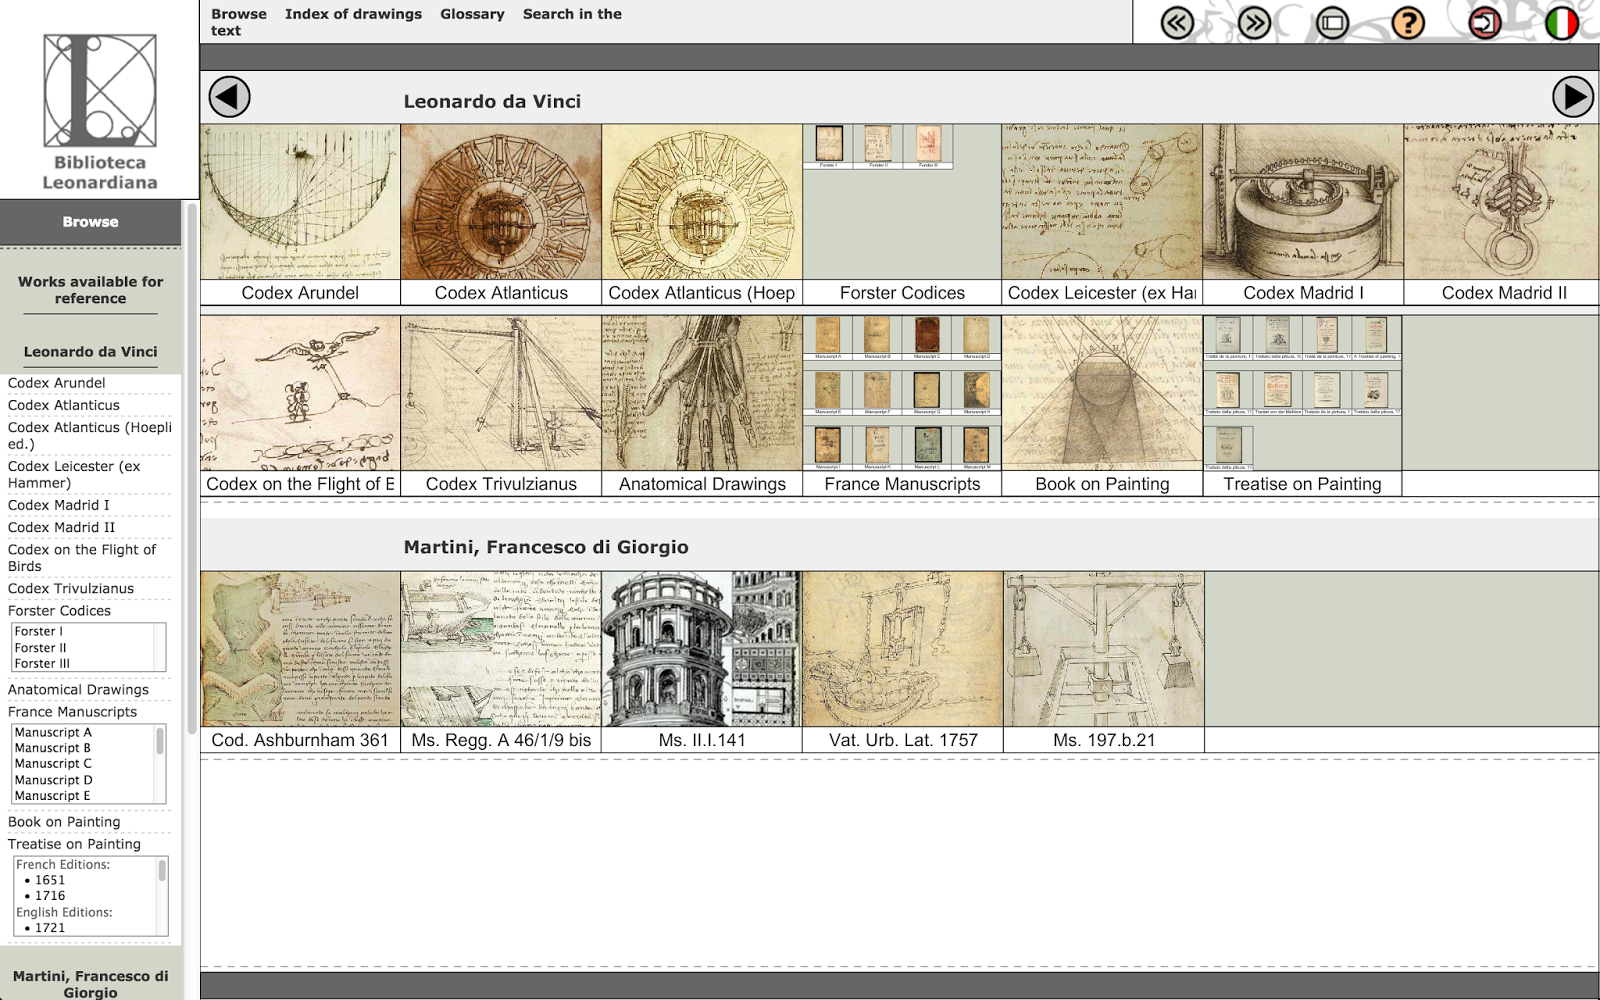 Leonardo da Vinci's diaries in their full digital glory